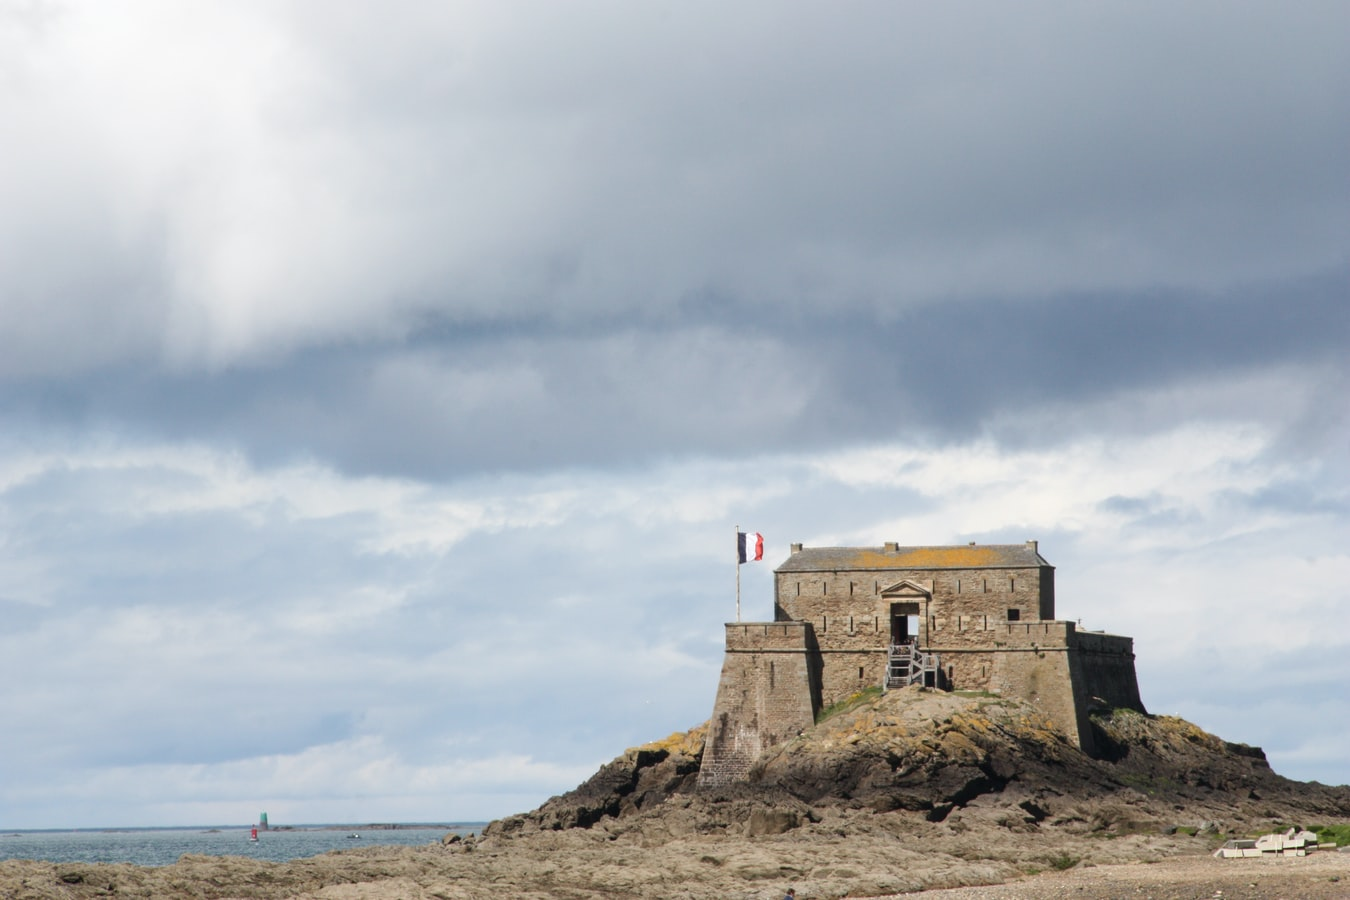 Fortifications of Vauban UNESCO World Heritage Site in France